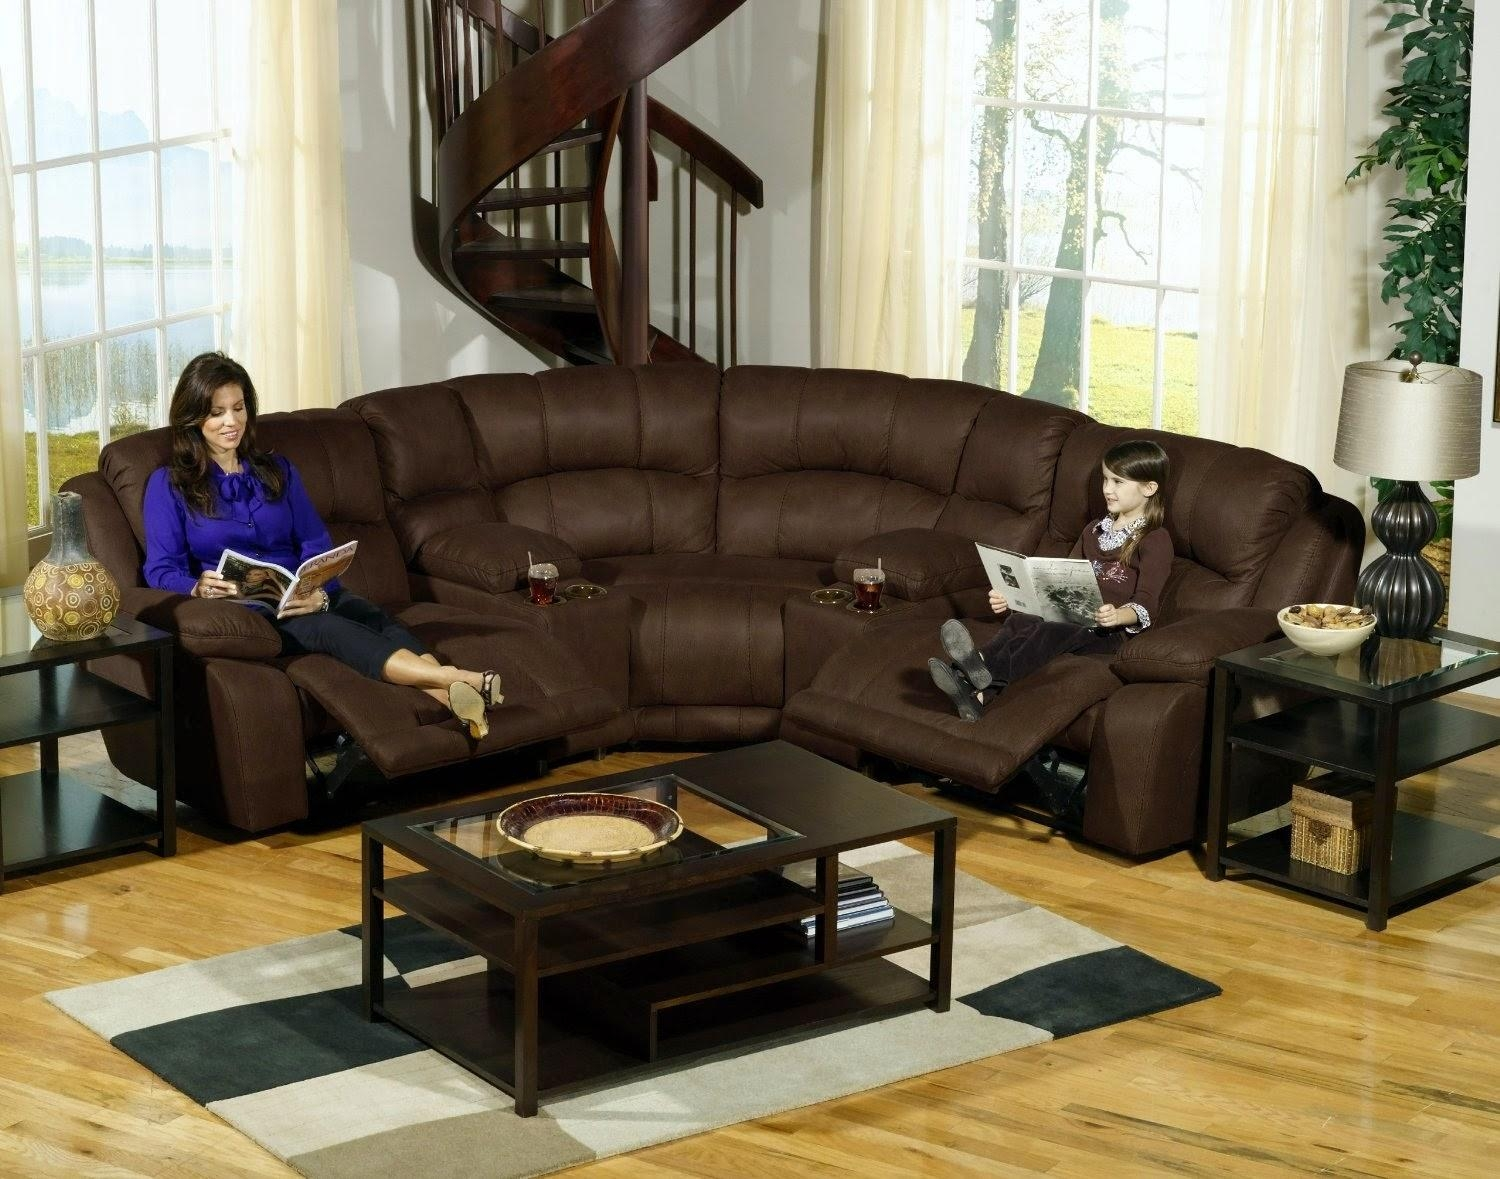 Sofas Center : Used Sectional Sofas For Saleowner Utah Wv On Inside Used Sectionals (Image 19 of 20)